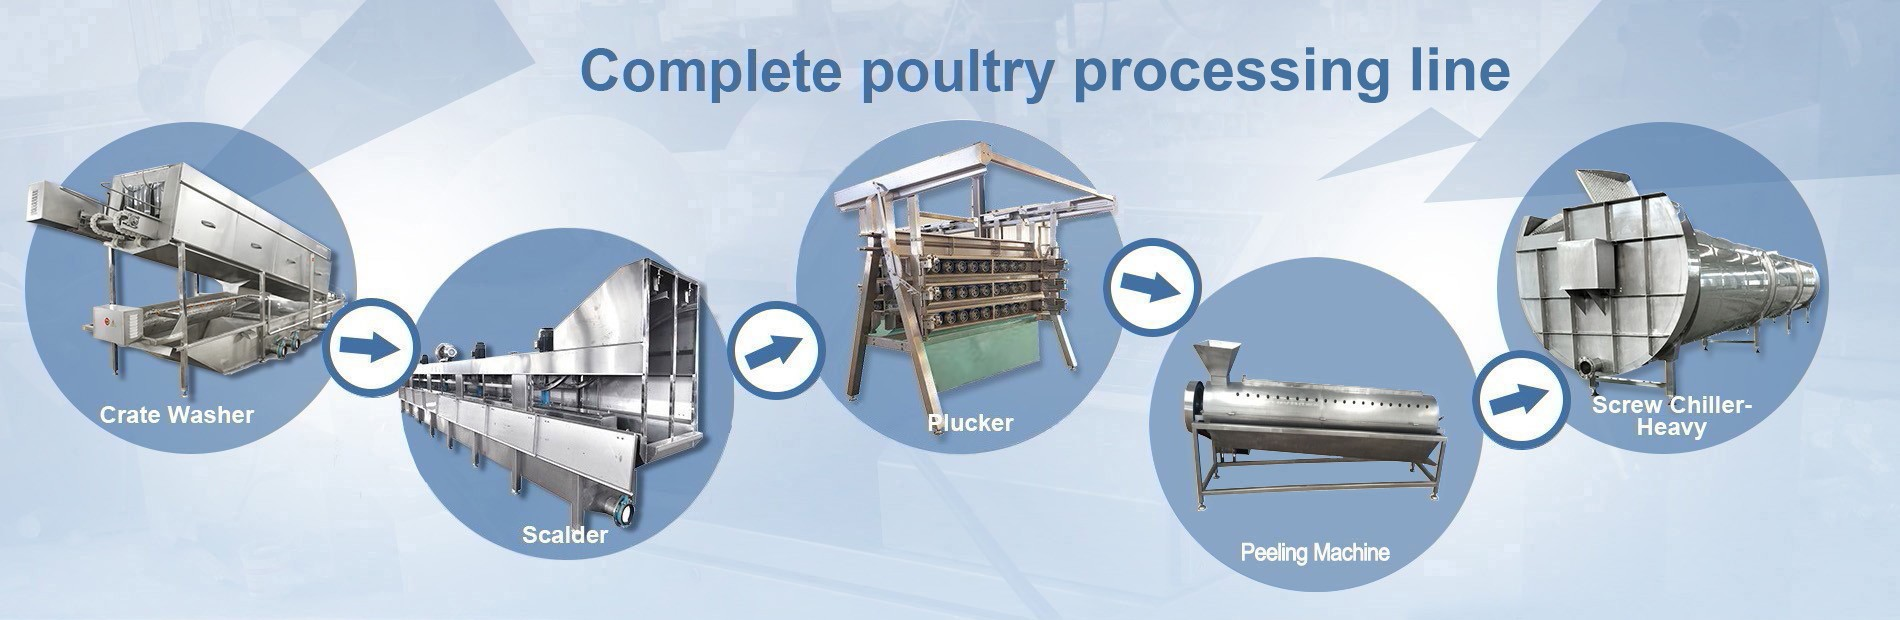 poultry-slaughtering-line